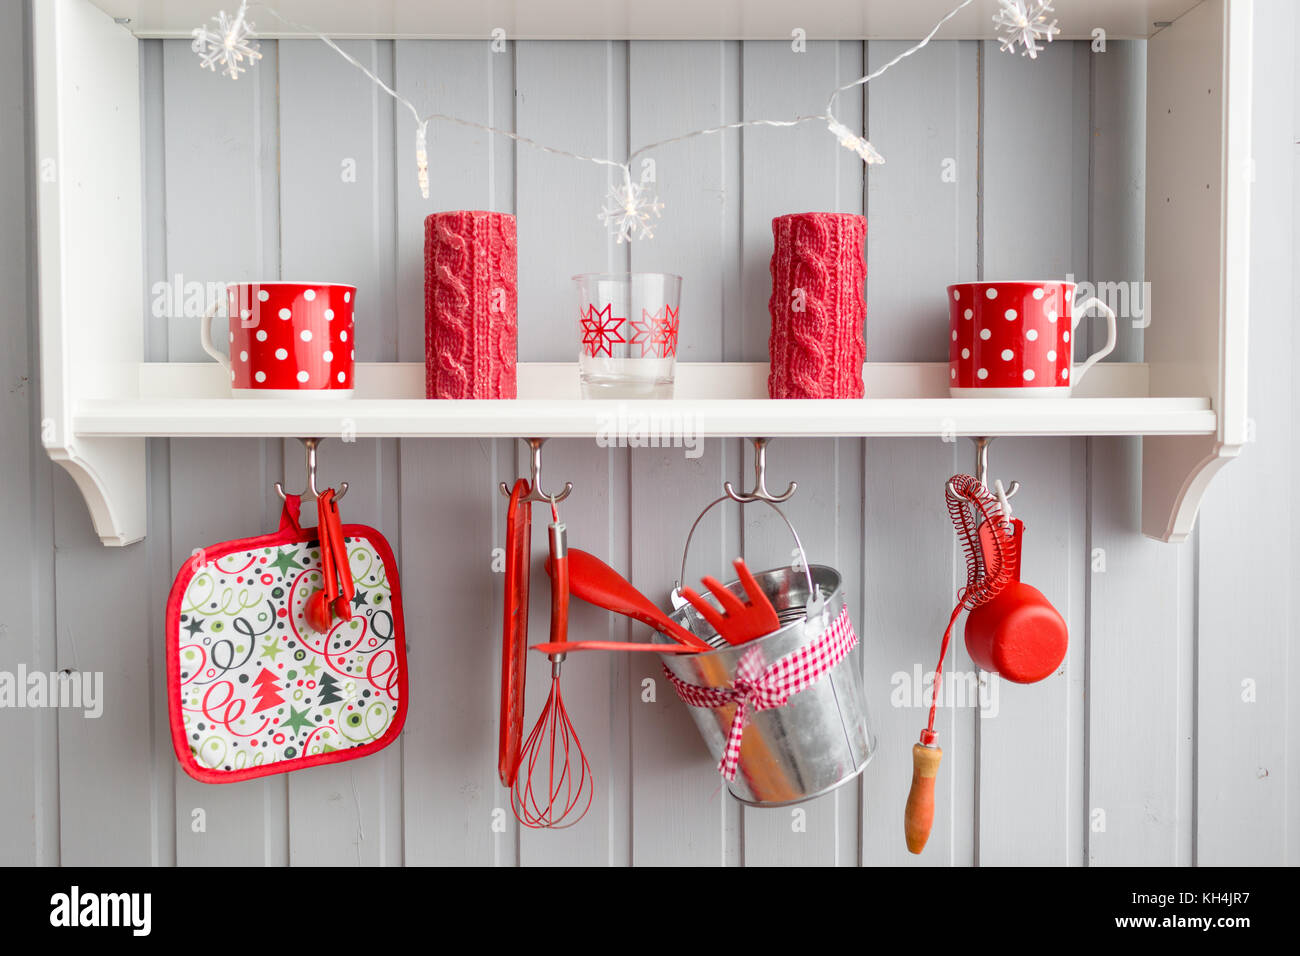 shelves with dishes. Interior light grey kitchen and red christmas ...